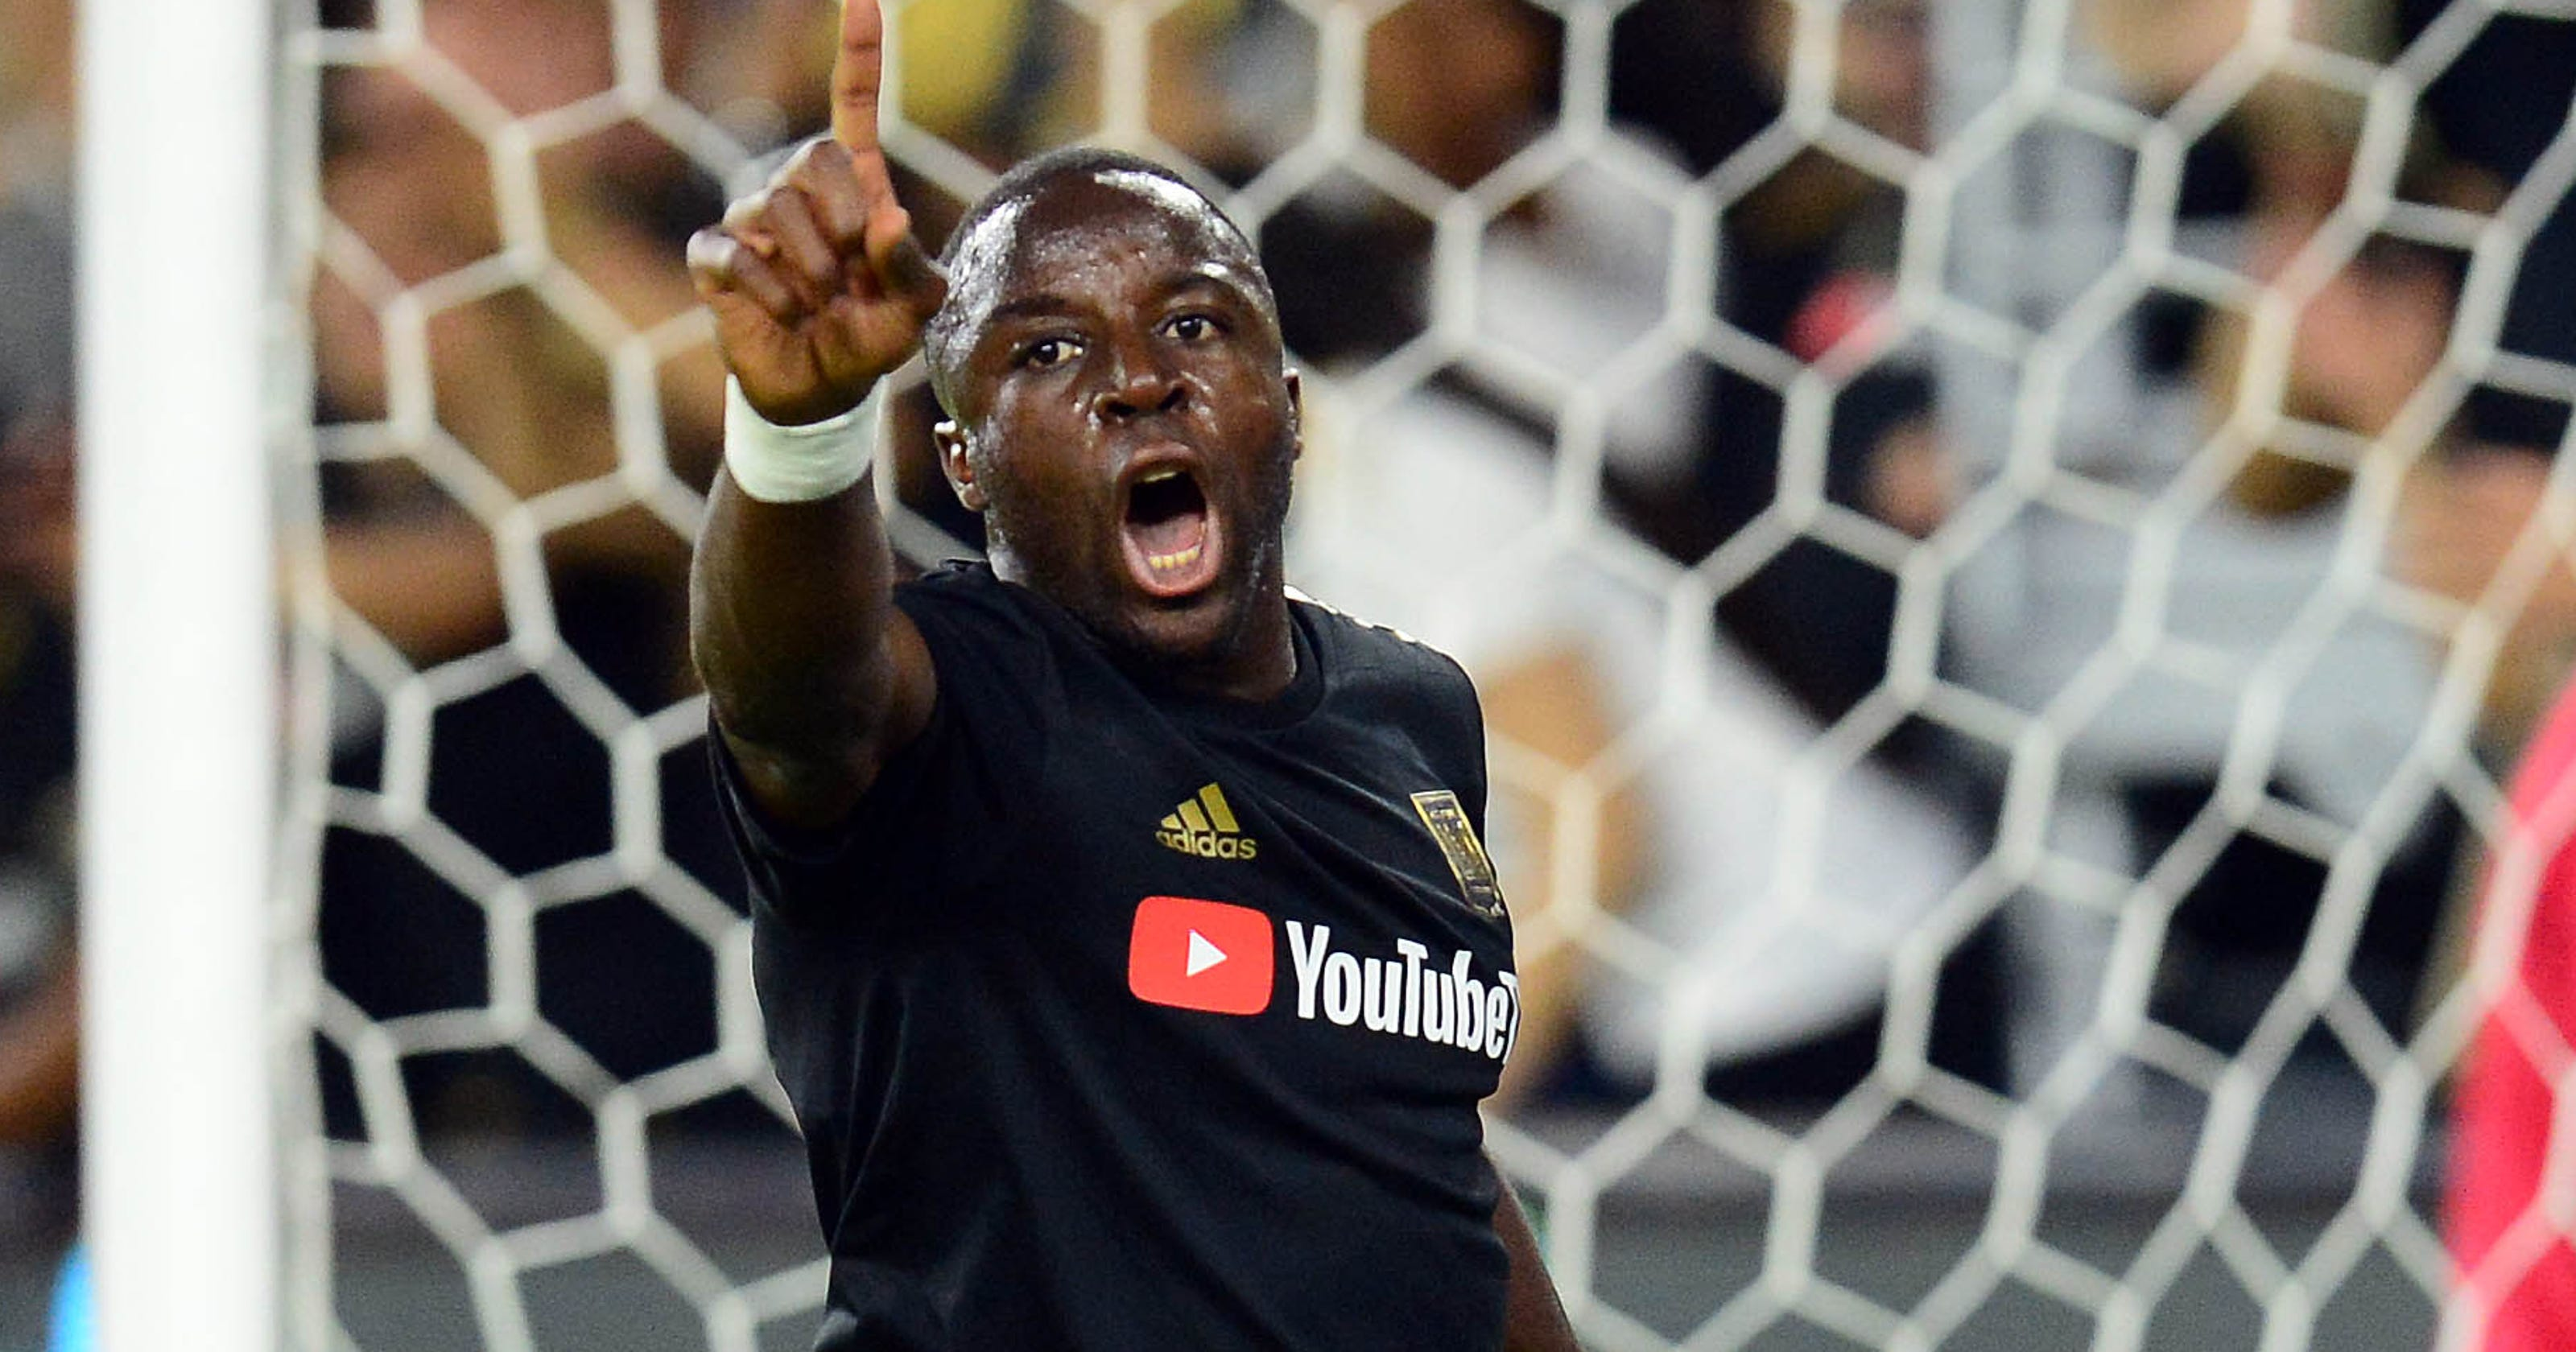 LAFC soccer player Adama Diomande claims Portland Timbers player called him racial slur